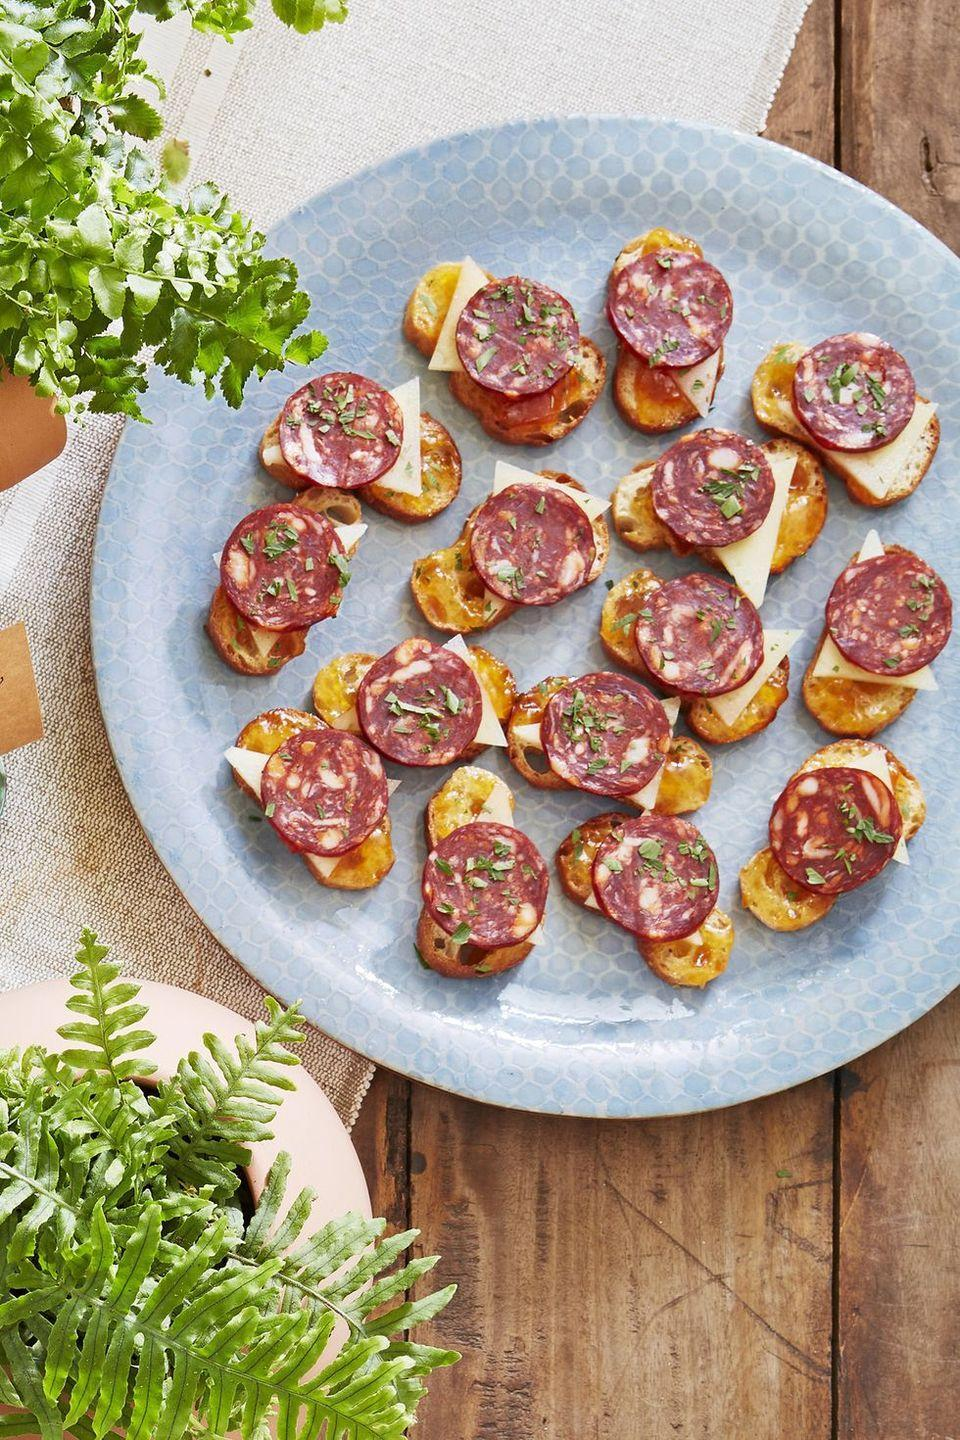 """<p>Apricot jam gives this meat and cheese combo a pleasing hint of sweetness. </p><p><strong><a href=""""https://www.countryliving.com/food-drinks/a22739023/chorizo-and-manchego-crostini-recipe/"""" rel=""""nofollow noopener"""" target=""""_blank"""" data-ylk=""""slk:Get the recipe"""" class=""""link rapid-noclick-resp"""">Get the recipe</a>.</strong> </p>"""